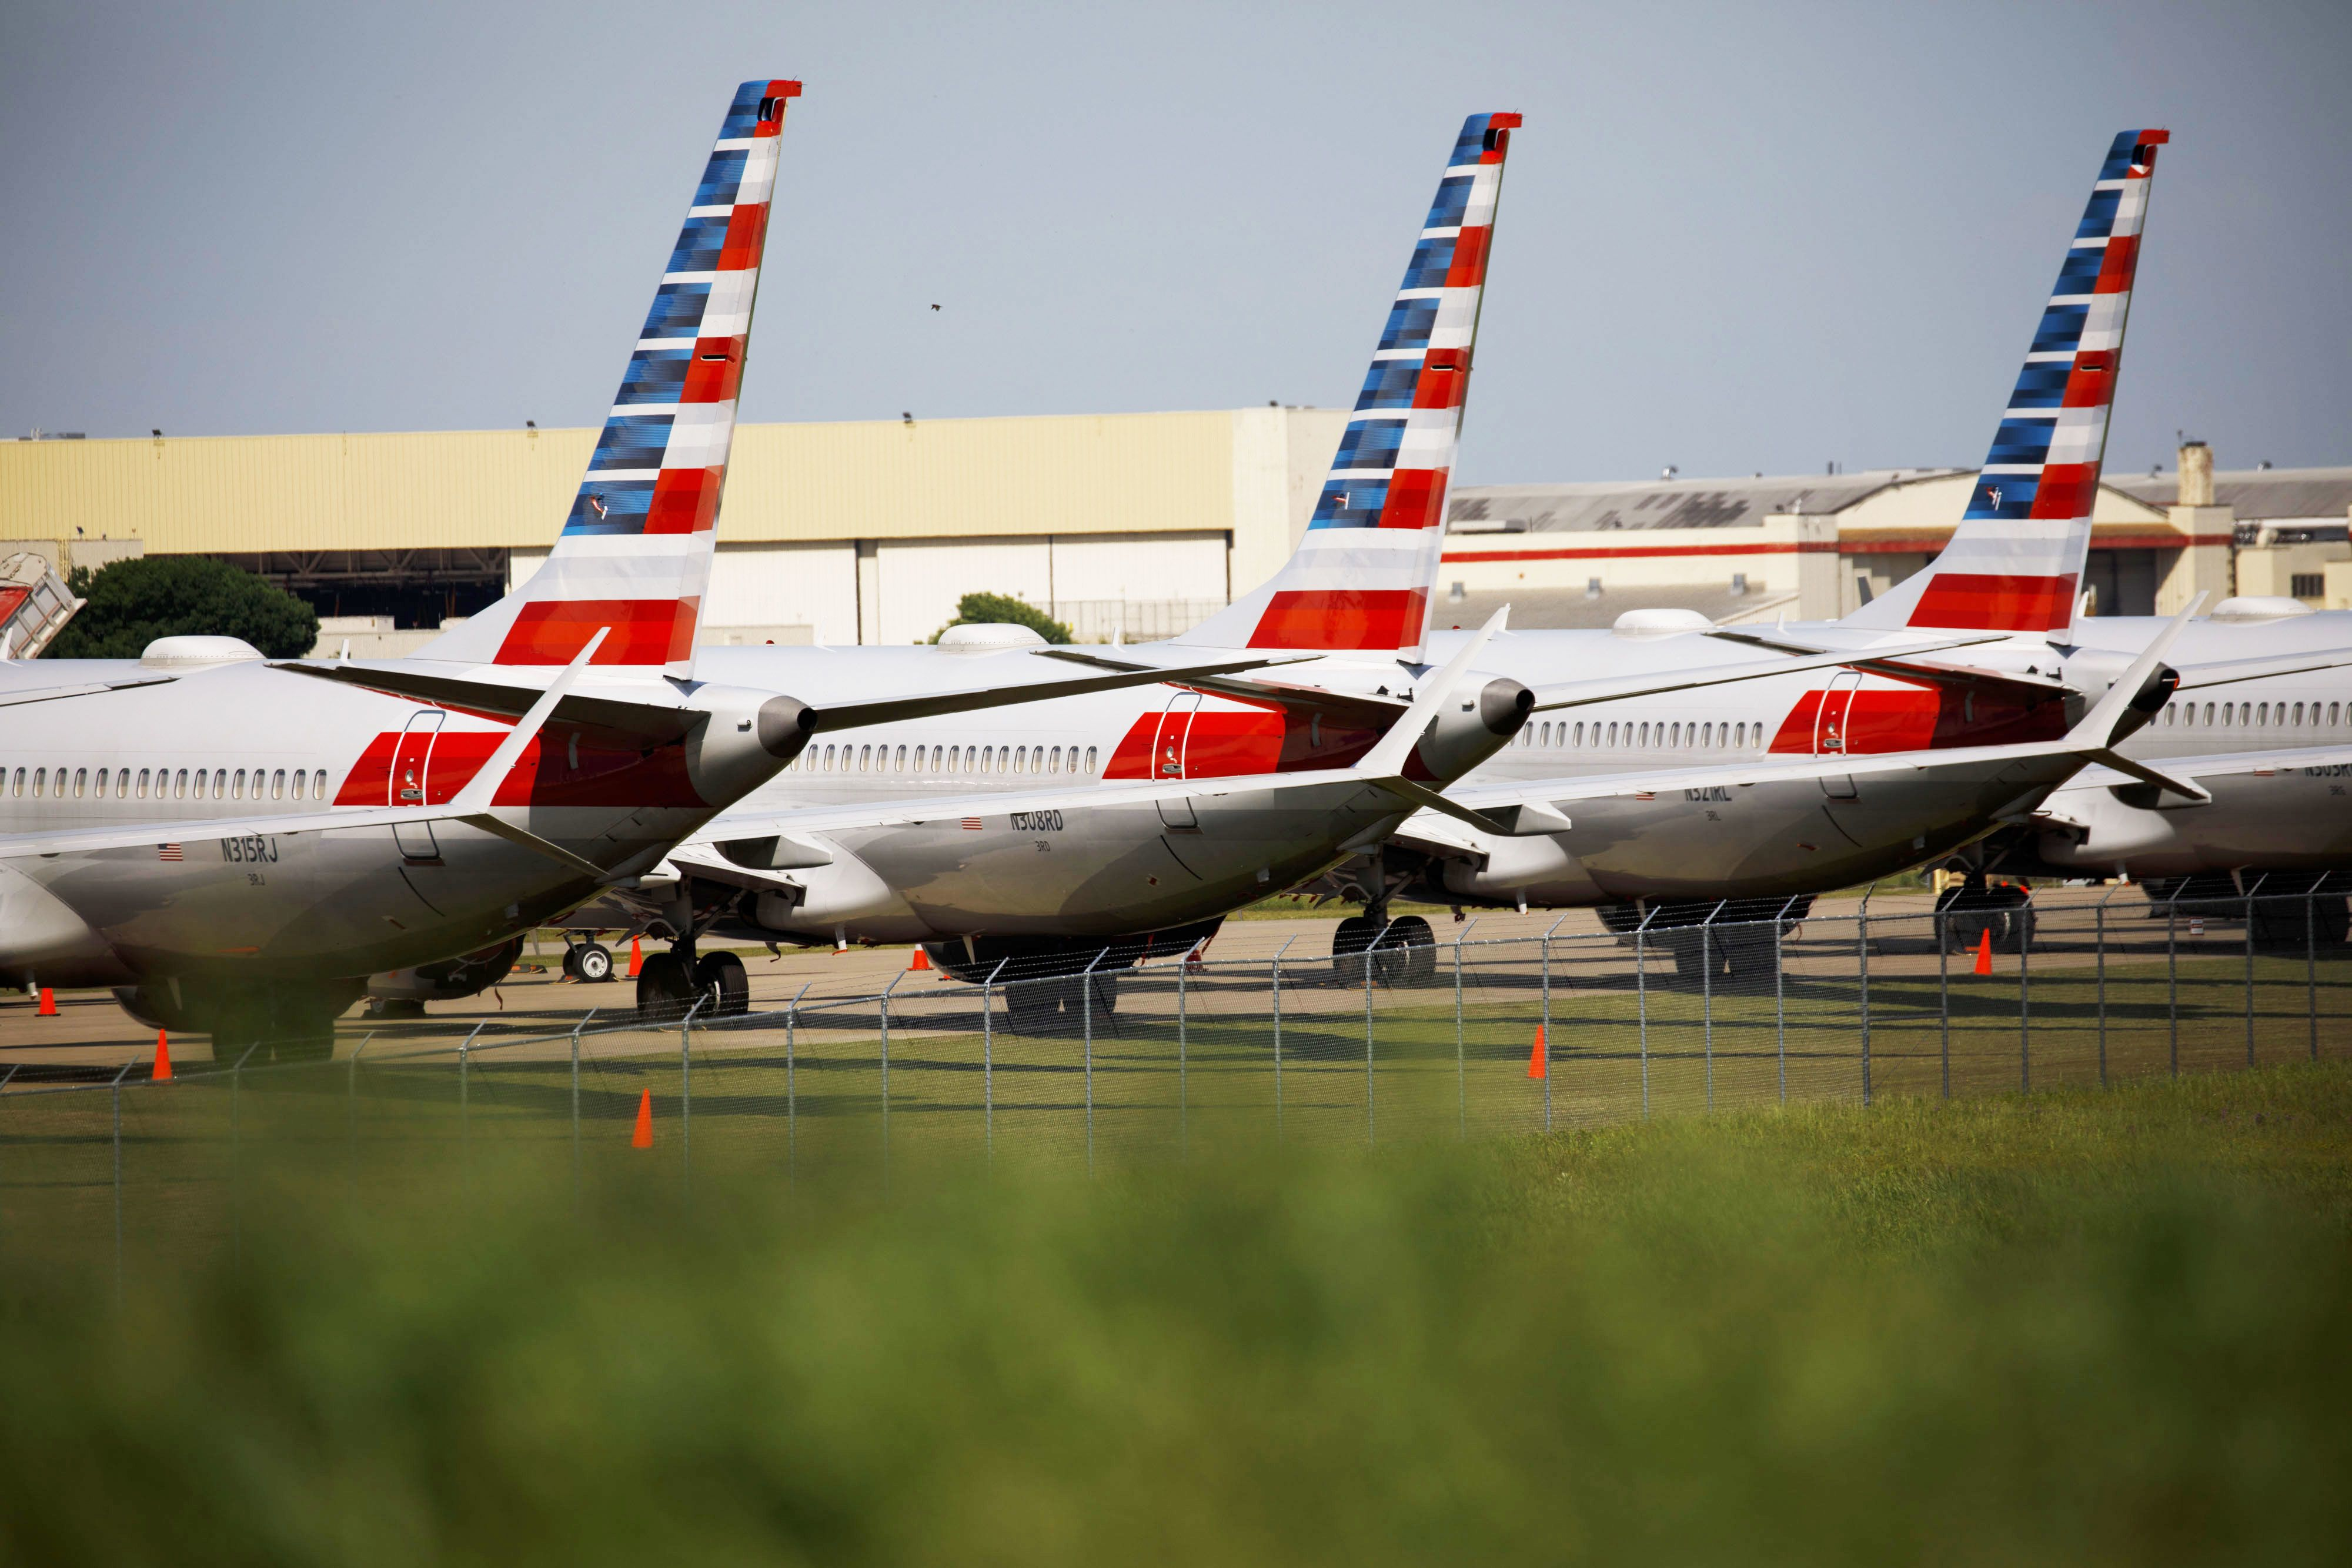 American Airlines removes Boeing 737 Max from schedules through Nov. 2